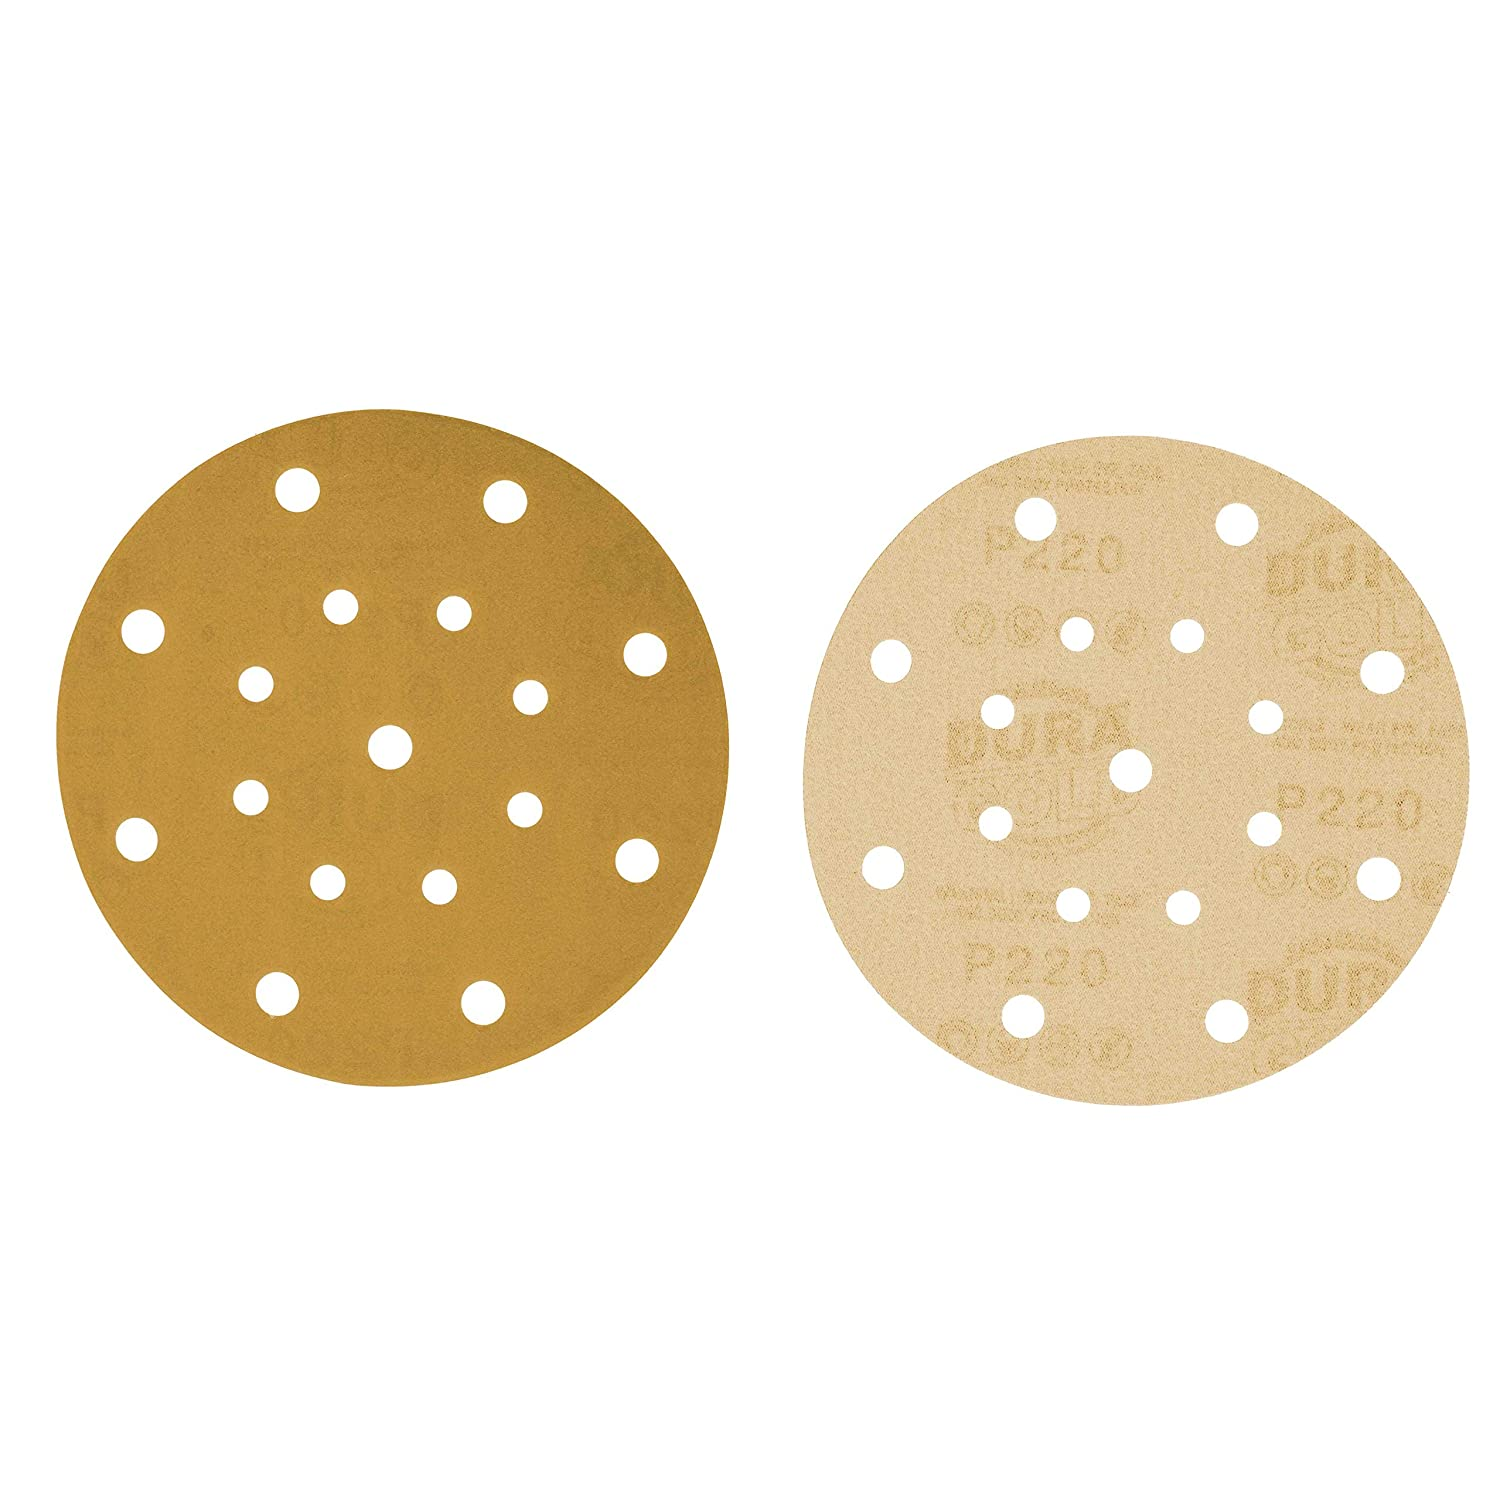 Box of 50 Finishing Sandpaper Discs for Woodworking or Automotive 17-Hole Pattern Dustless Hook and Loop for DA Sander 6 Gold Sanding Discs 100 Grit Premium Dura-Gold